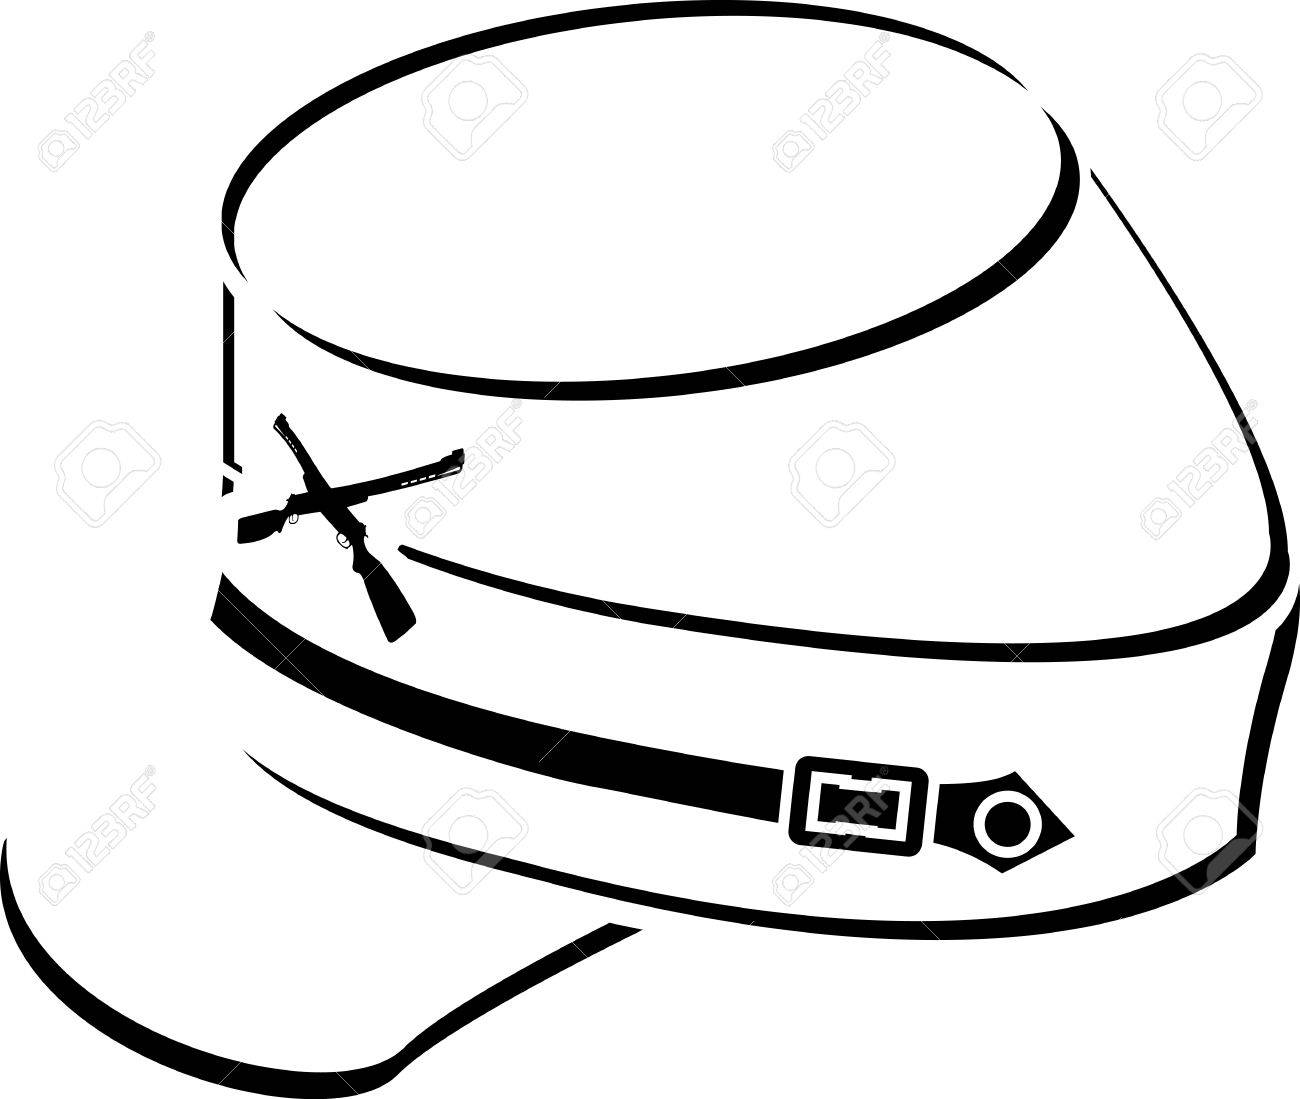 american civil war kepi sketch illustration royalty free cliparts rh 123rf com free civil war clipart images